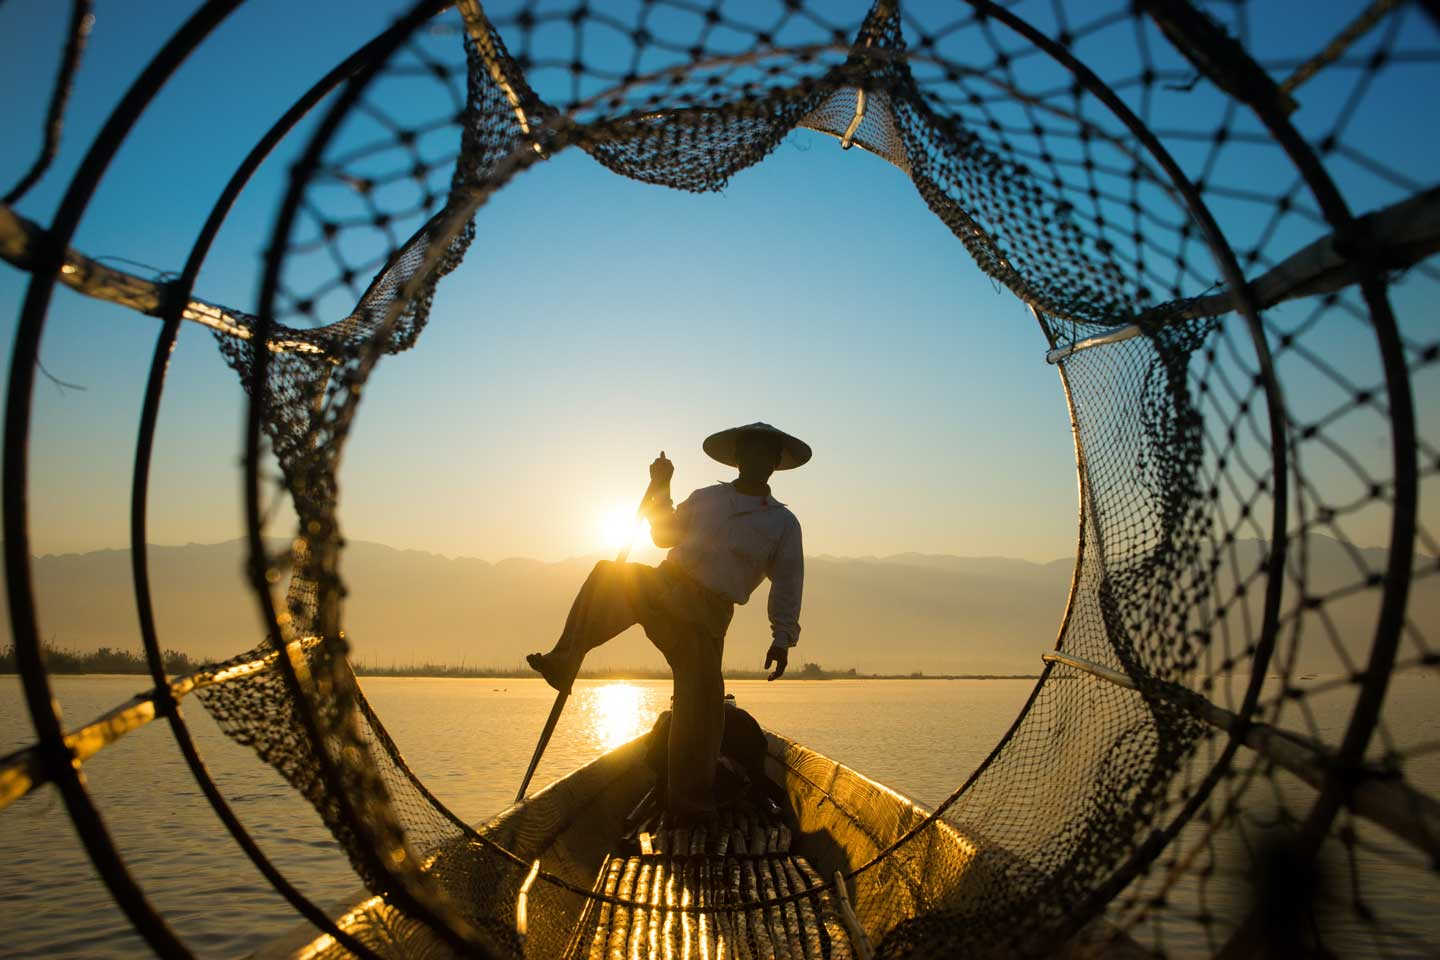 myanmar inle lake fisherman